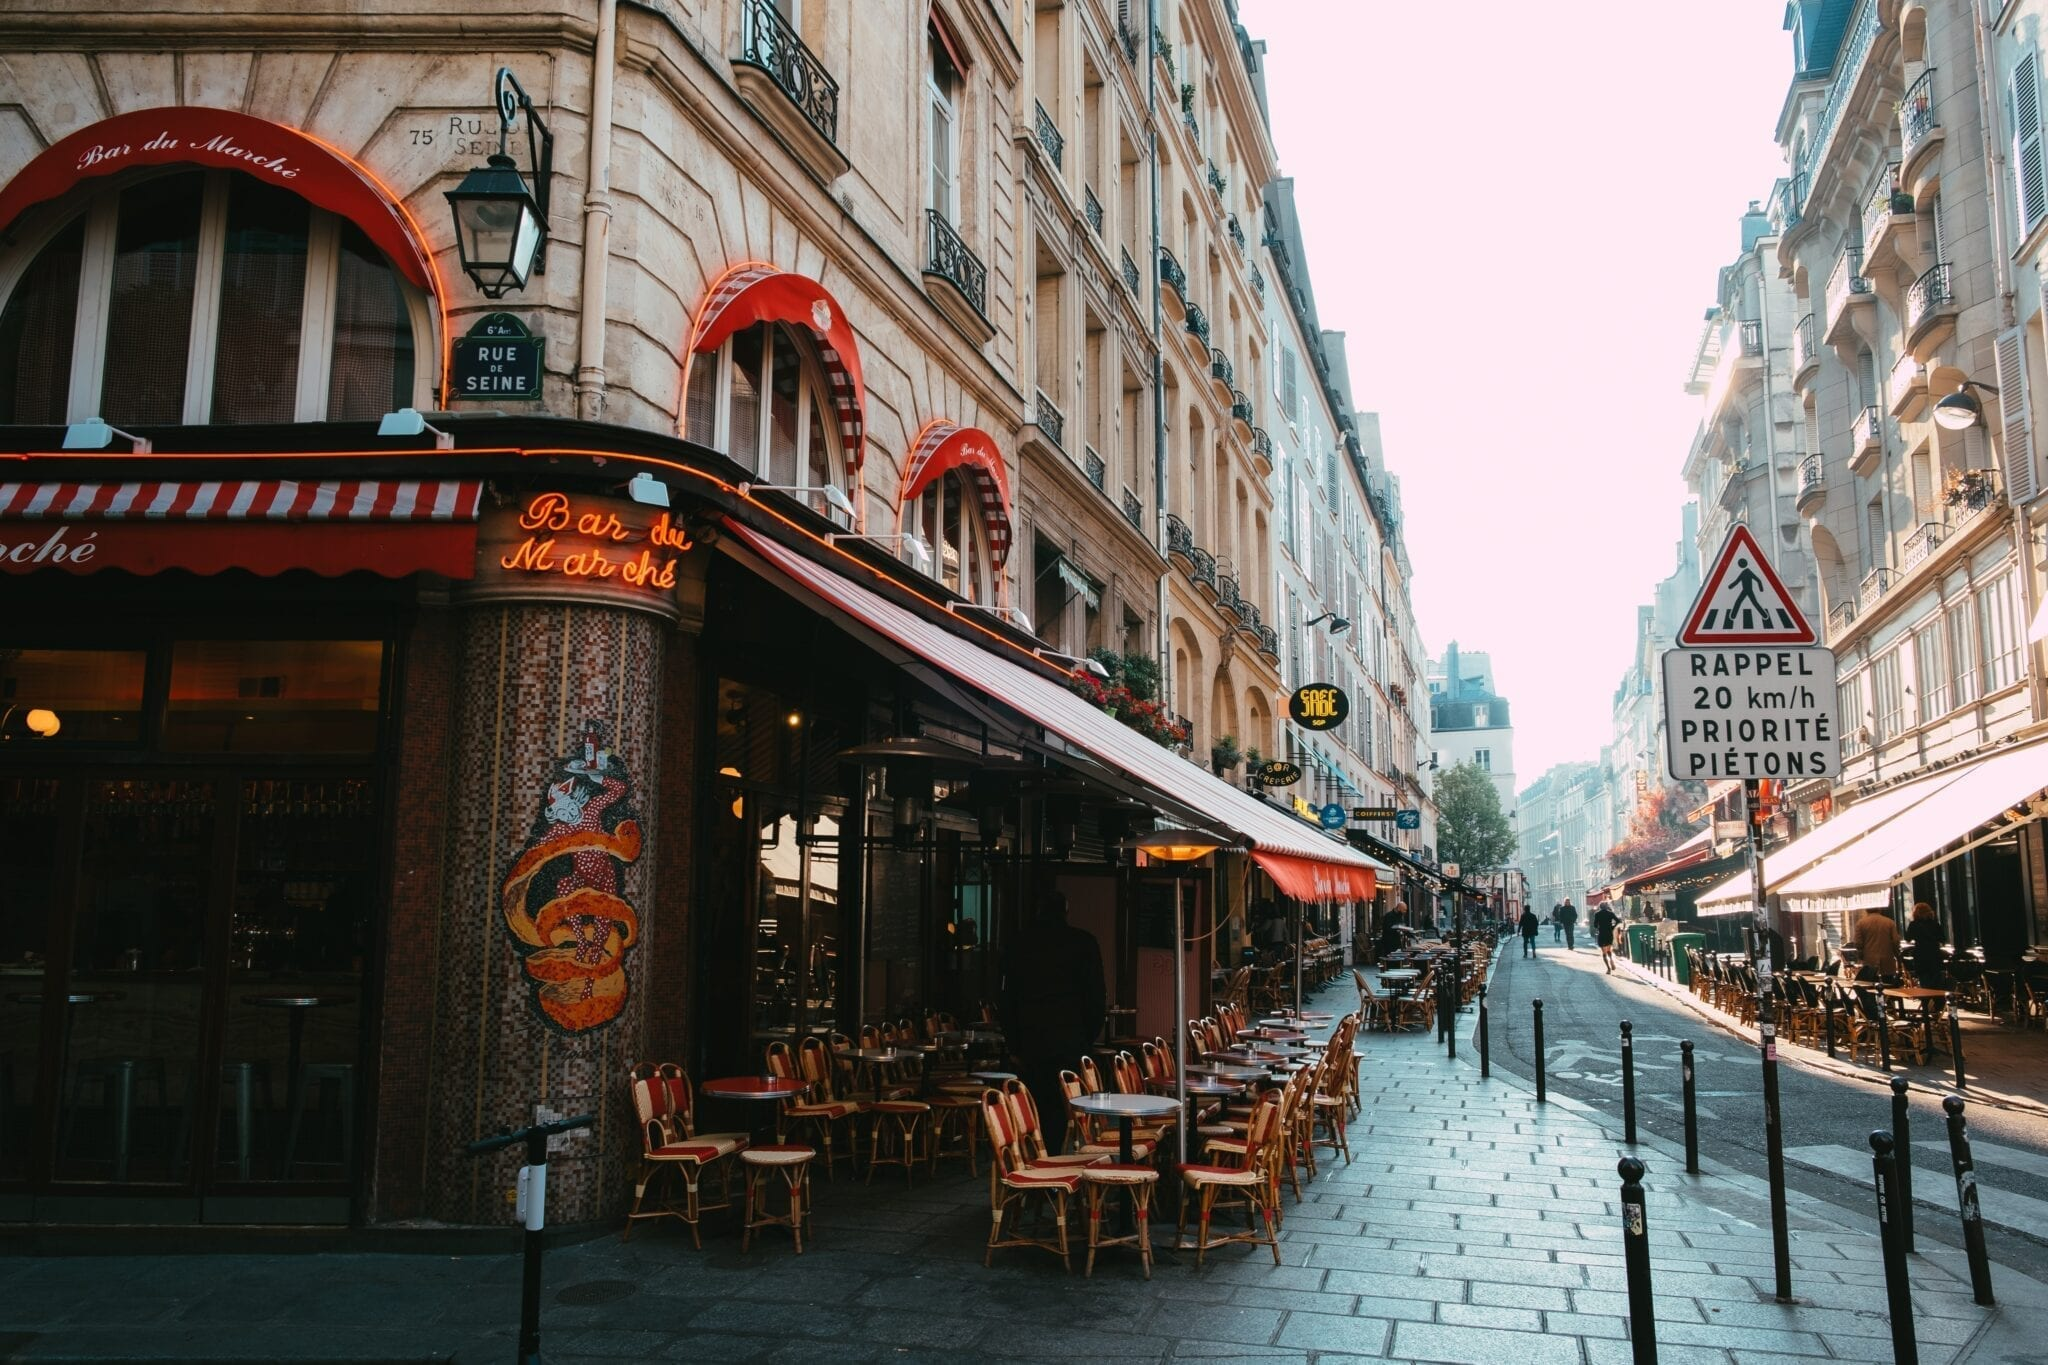 Parisian streets and cafe. Photo by Caleb Maxwell.